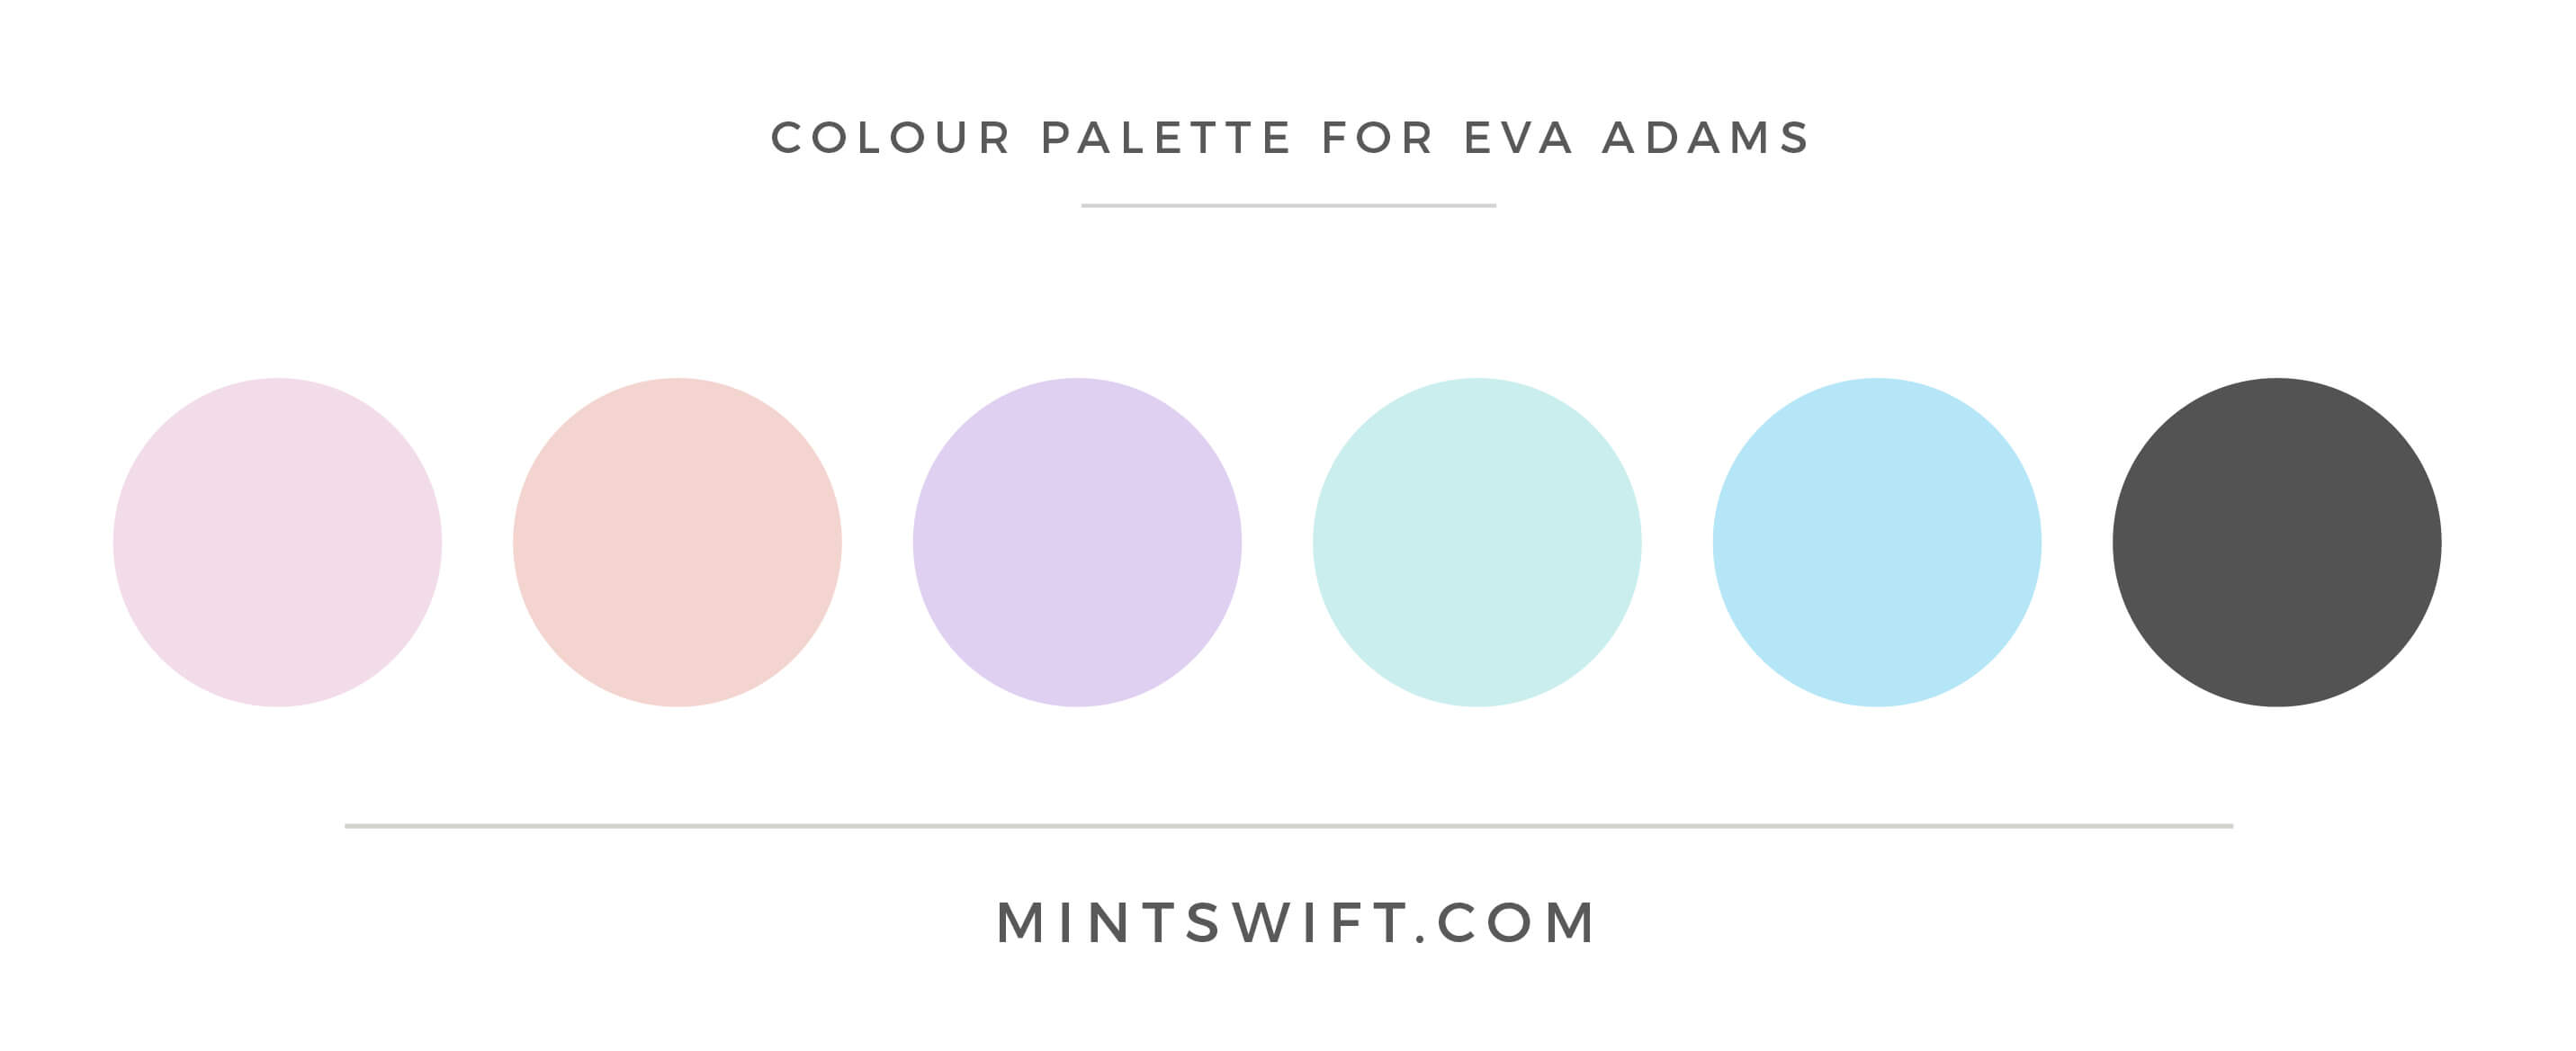 Eva Adams - Colour Palette - MintSwift